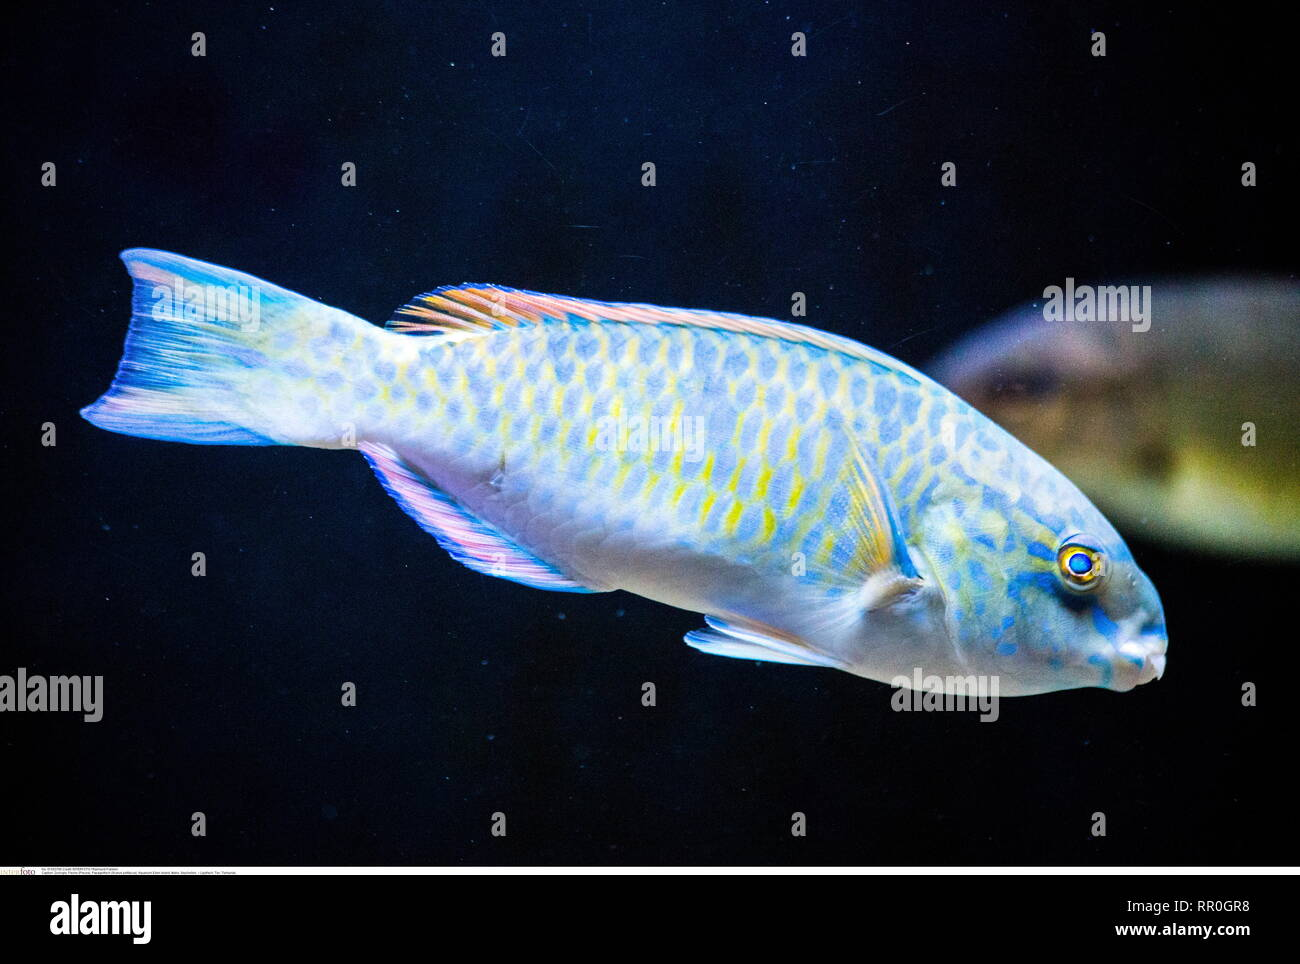 Lippfisch, Tier, Tierkunde, Additional-Rights-Clearance-Info-Not-Available - Stock Image